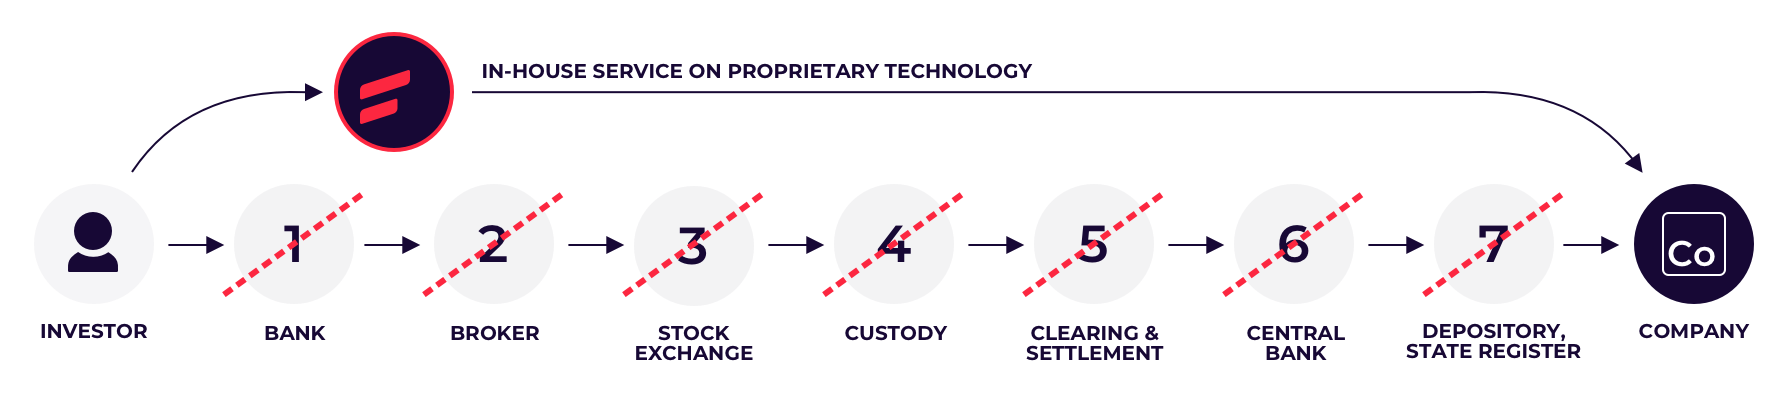 A diagram showing how Funderbeam technology enables direct investing in companies.